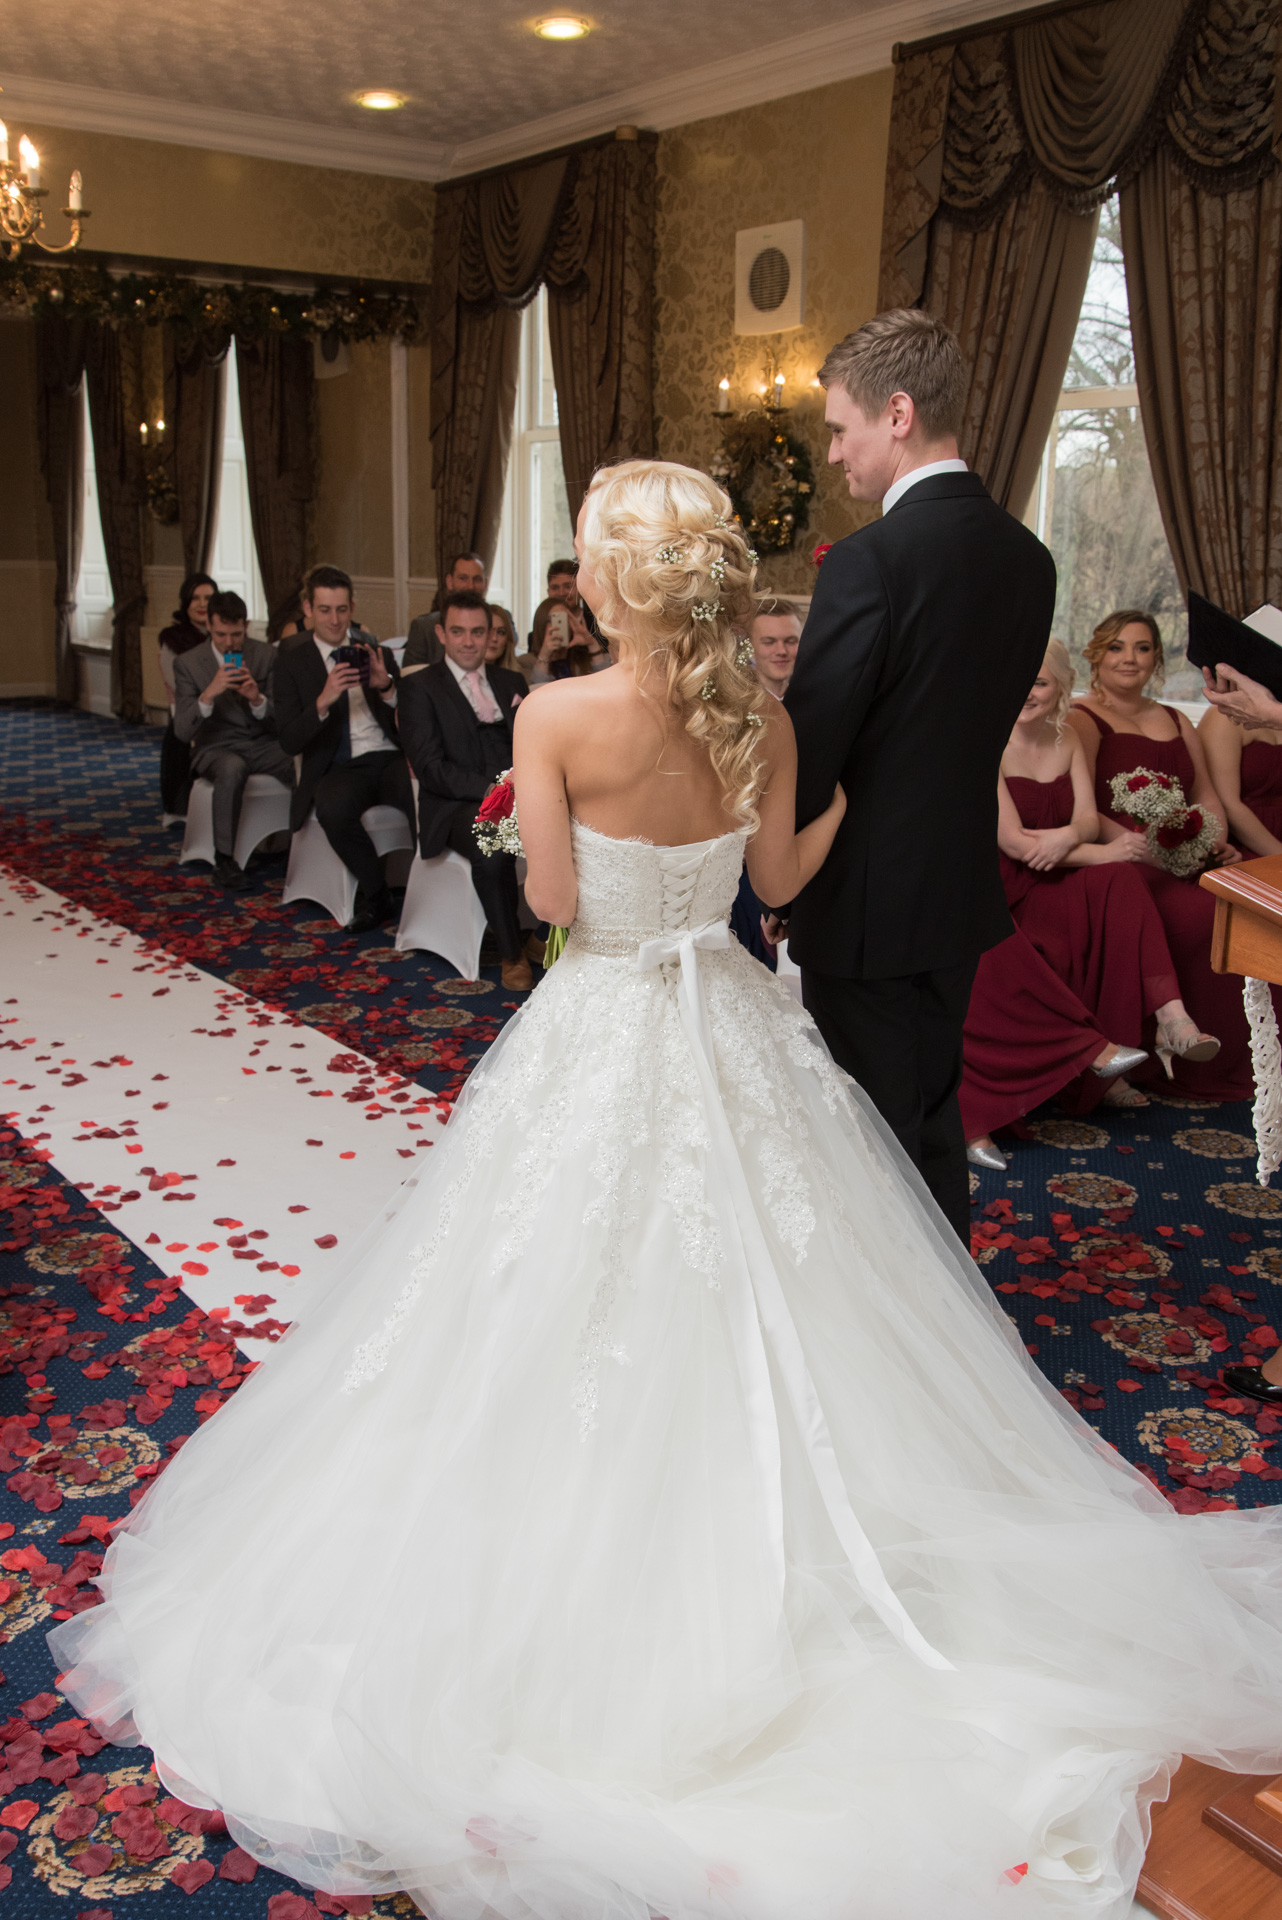 Dean and Jemma's ceremony at Waterton Park Hotel 4